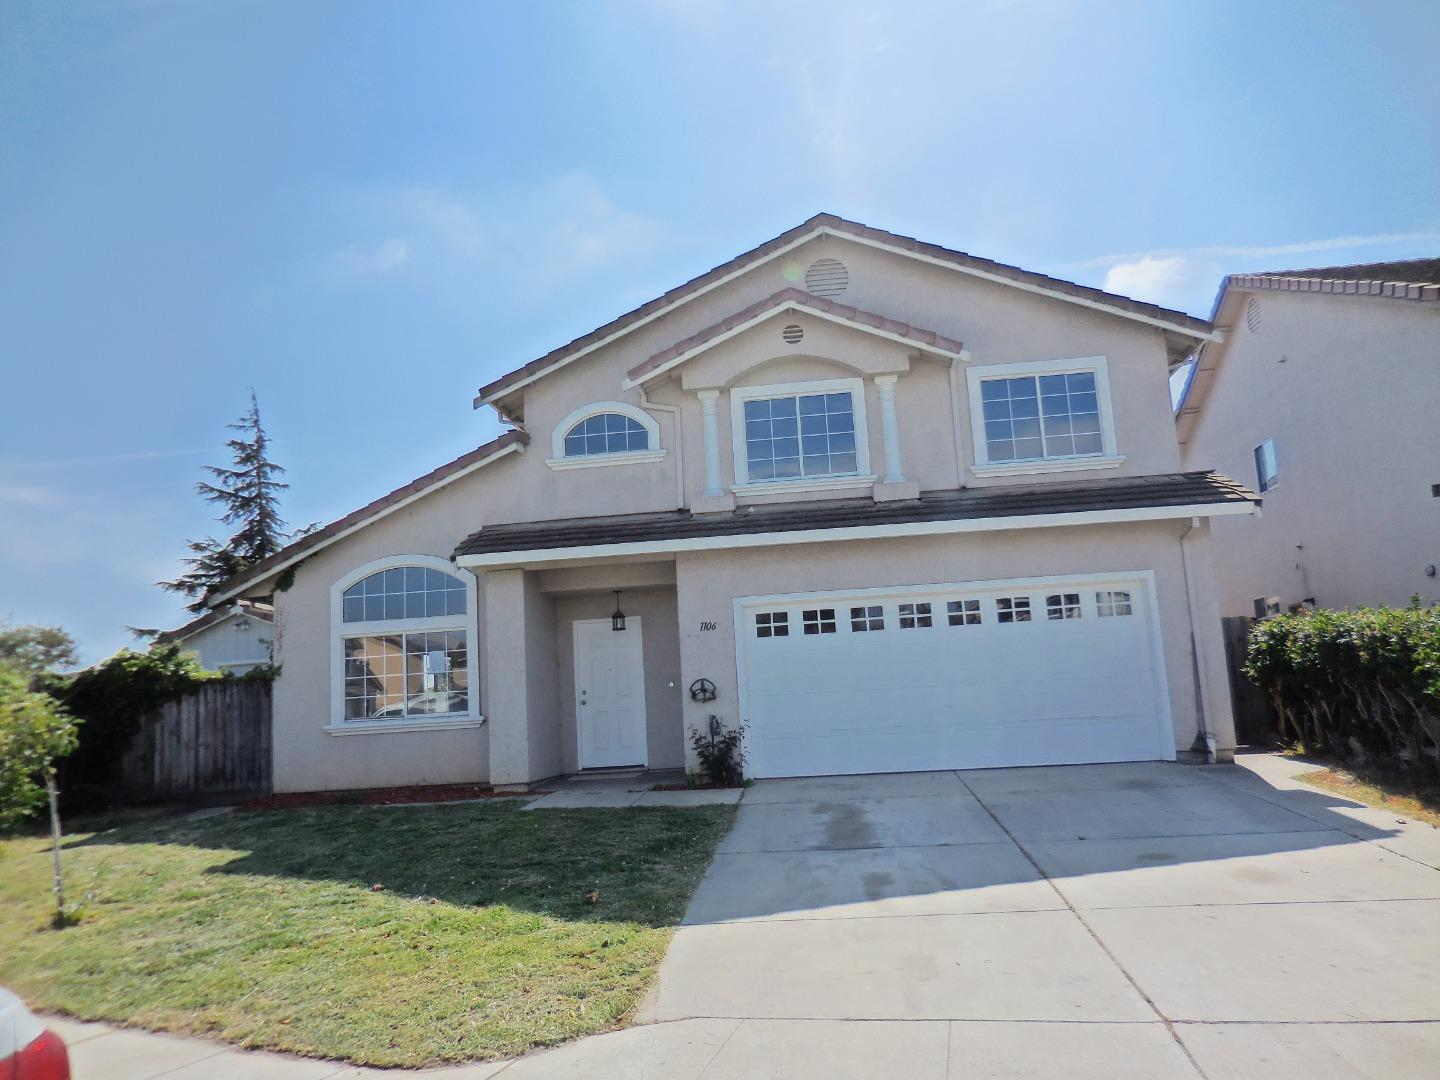 1106 Eagle Drive Salinas, CA 93905 - MLS #: ML81715670